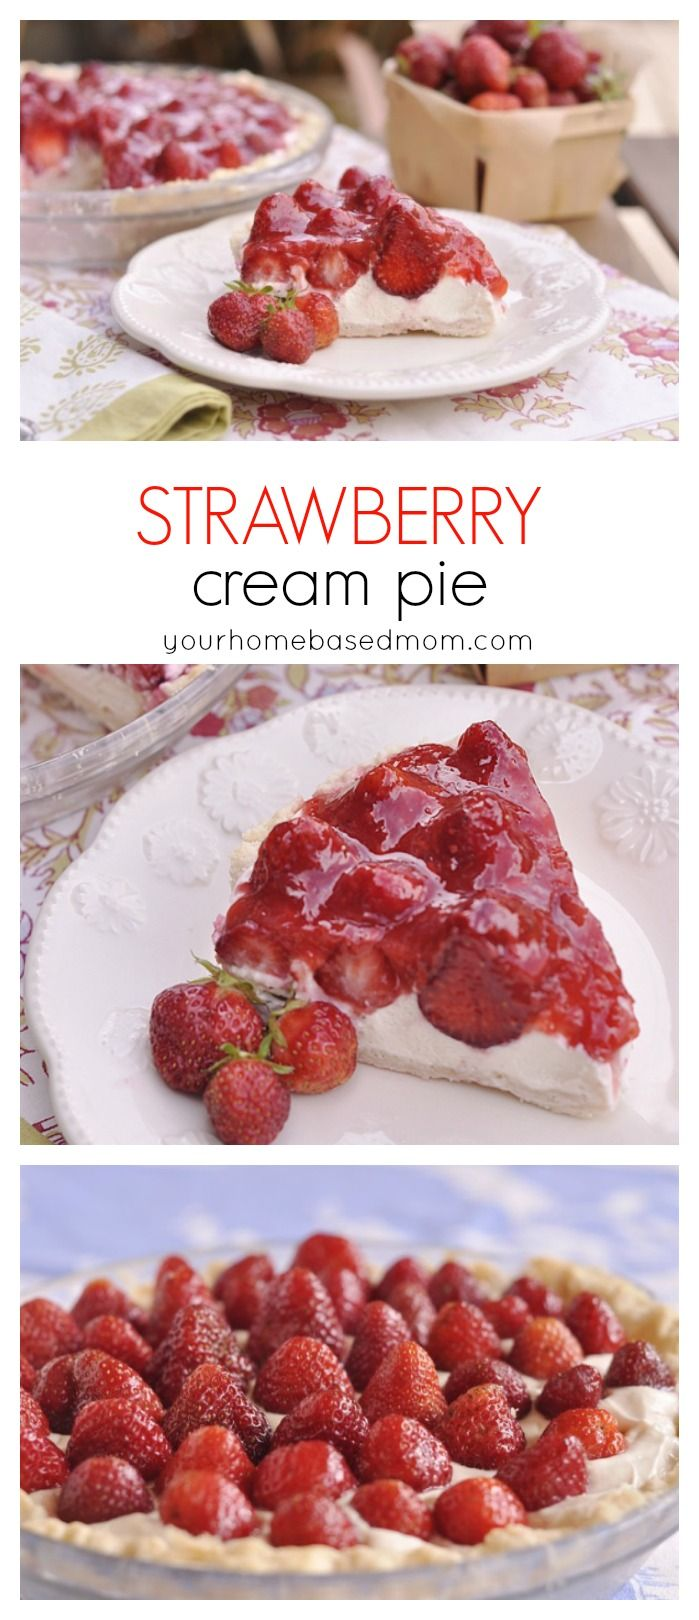 Strawberry Cream Pie @yourhomebasedmom.com